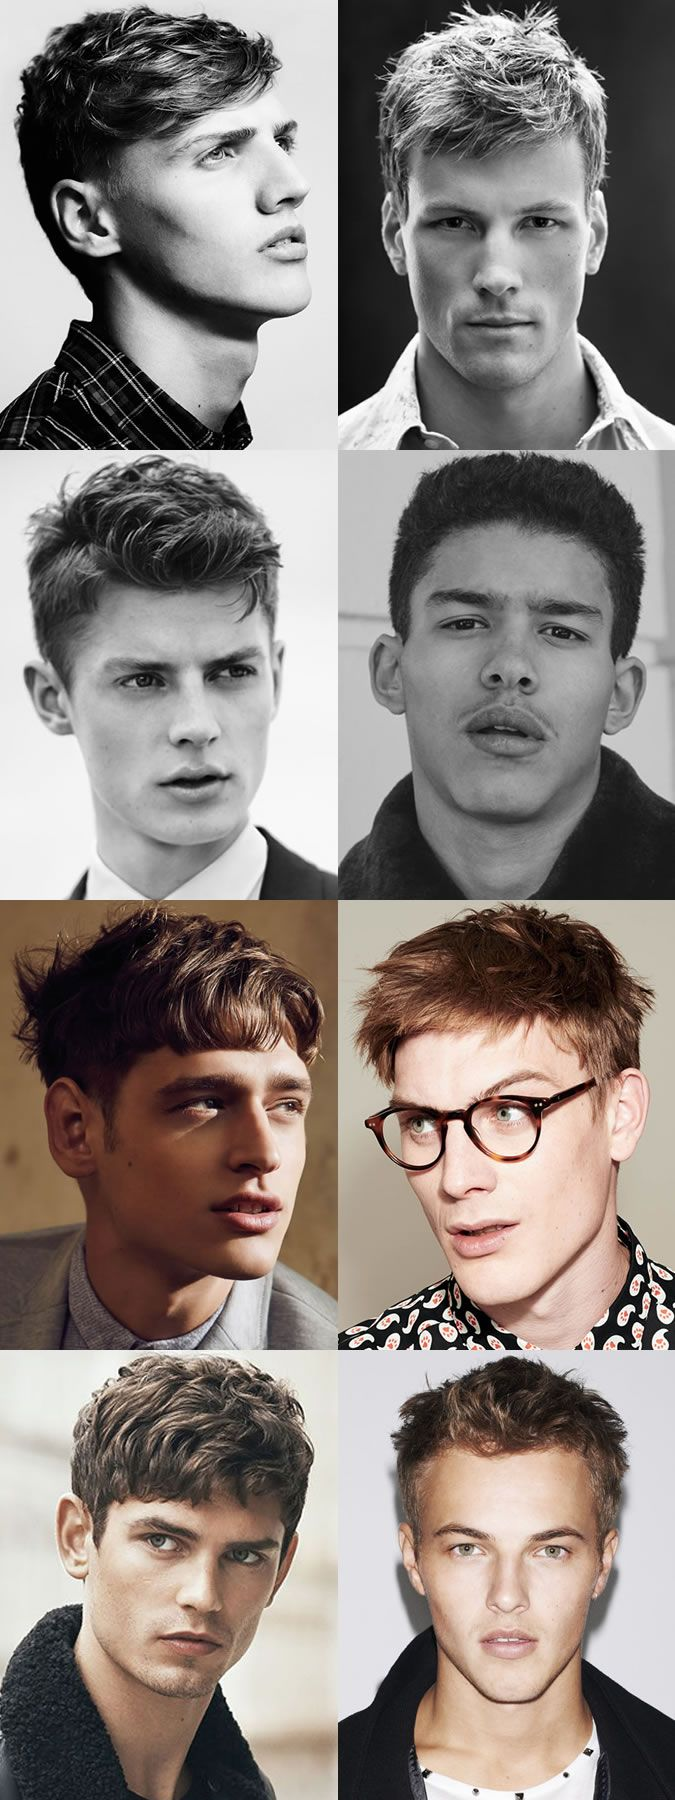 Men's Hairstyle Trends 2016 - Short and Choppy Hair